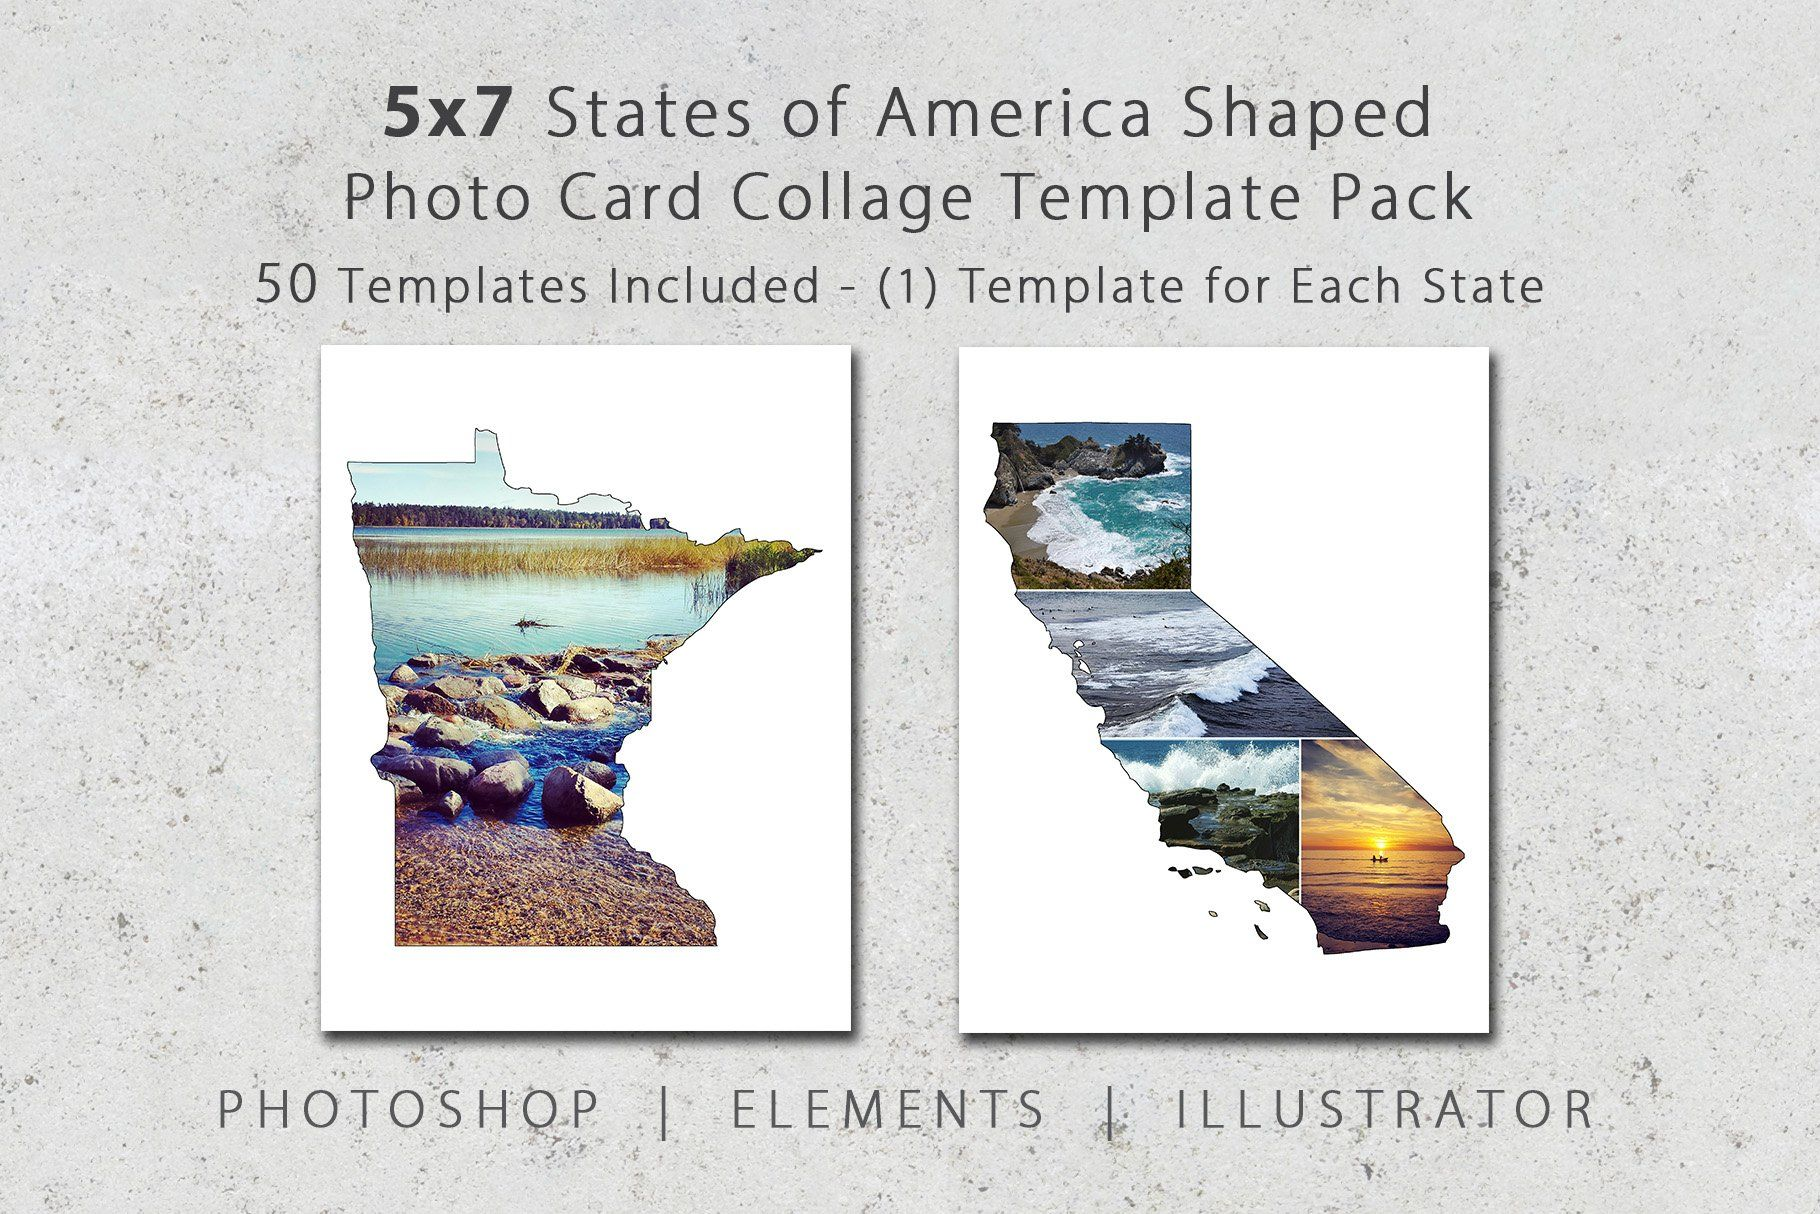 5x7 State Shaped Card Template Pack In 2020 Photo Collage Template Collage Template Photo Card Template